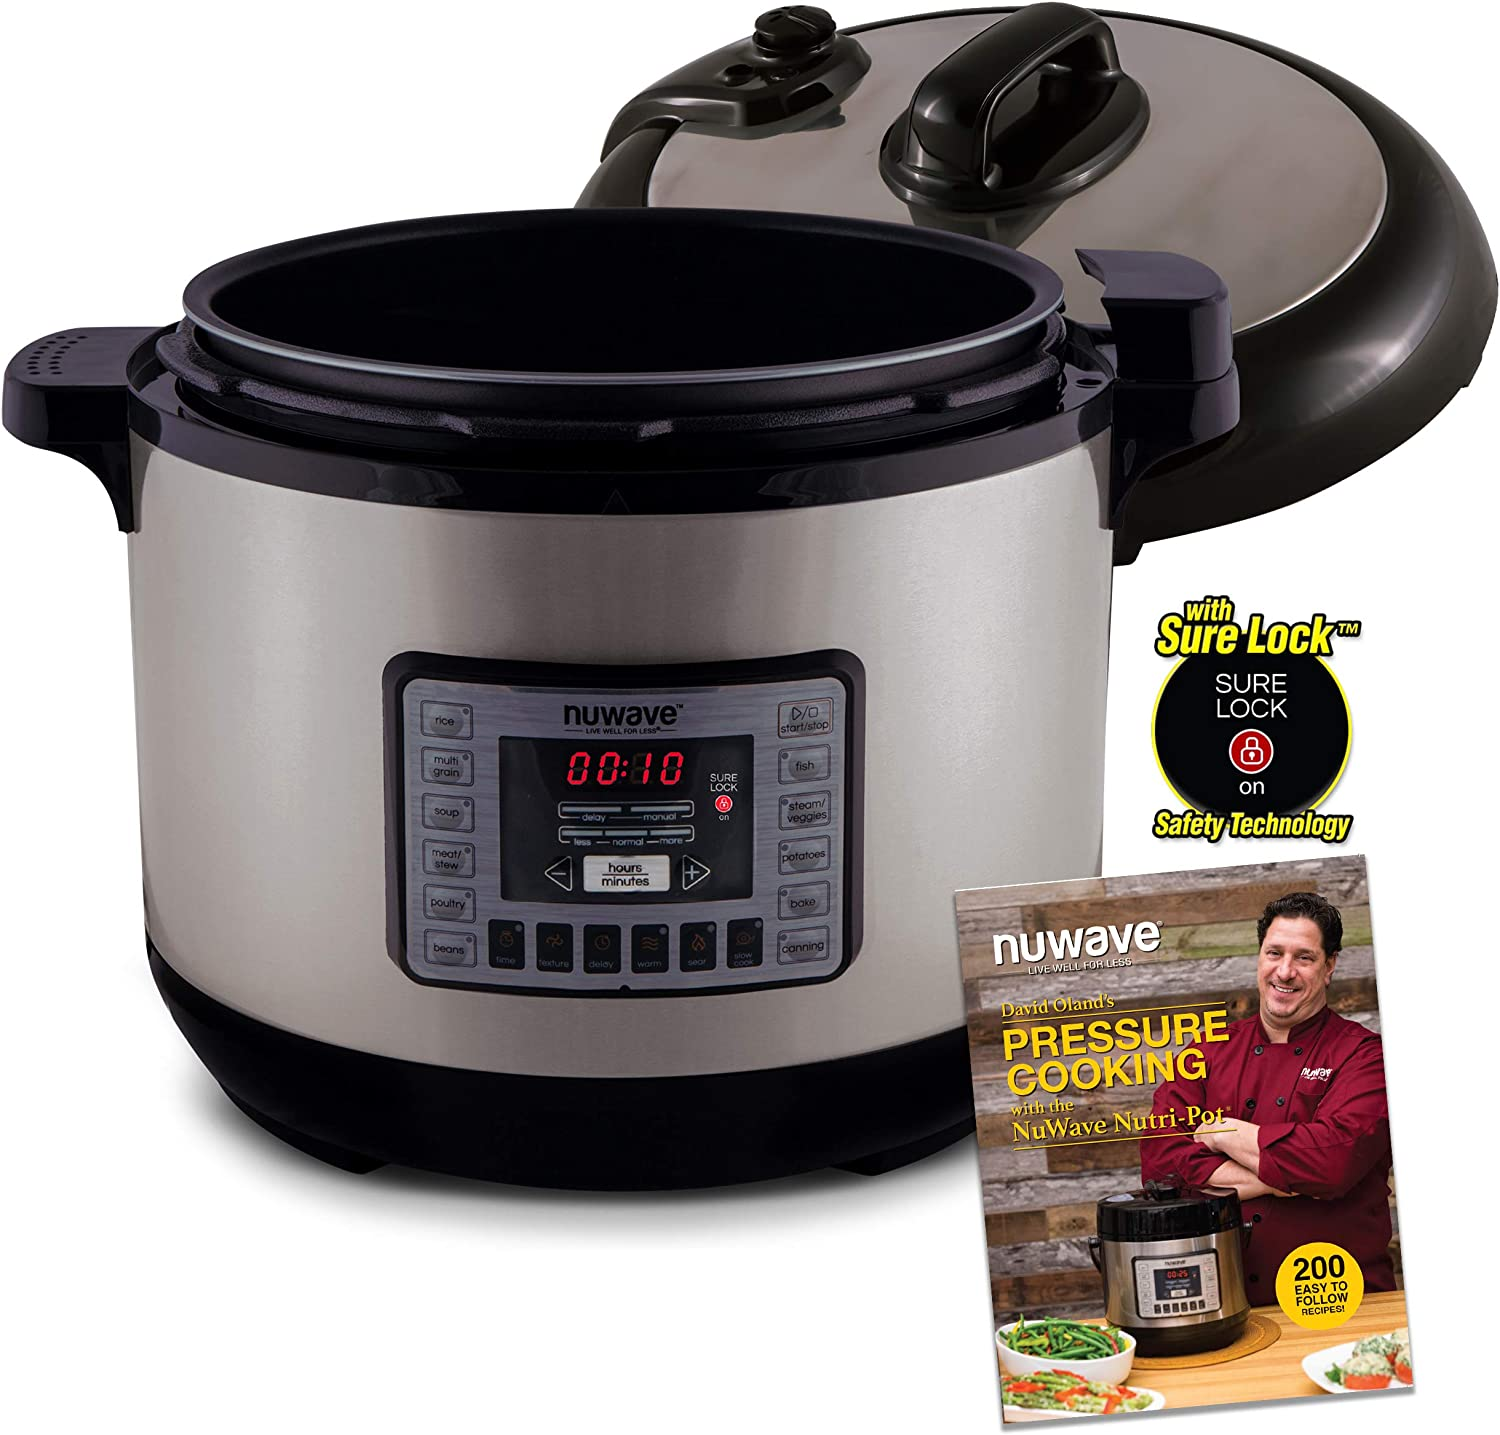 NUWAVE NUTRI-POT 13-Quart DIGITAL PRESSURE COOKER with Sure-Lock Safety System; Dishwasher-Safe Non-Stick Inner Pot; Glass Lid for Slow Cooking; Cooking Rack, 11 Pre-Programmed Presets; Detachable Pressure Pot Lid for Easy Cleaning; and Chef Tested 200 Recipe Pressure Cooking Cookbook. (13-Quart)